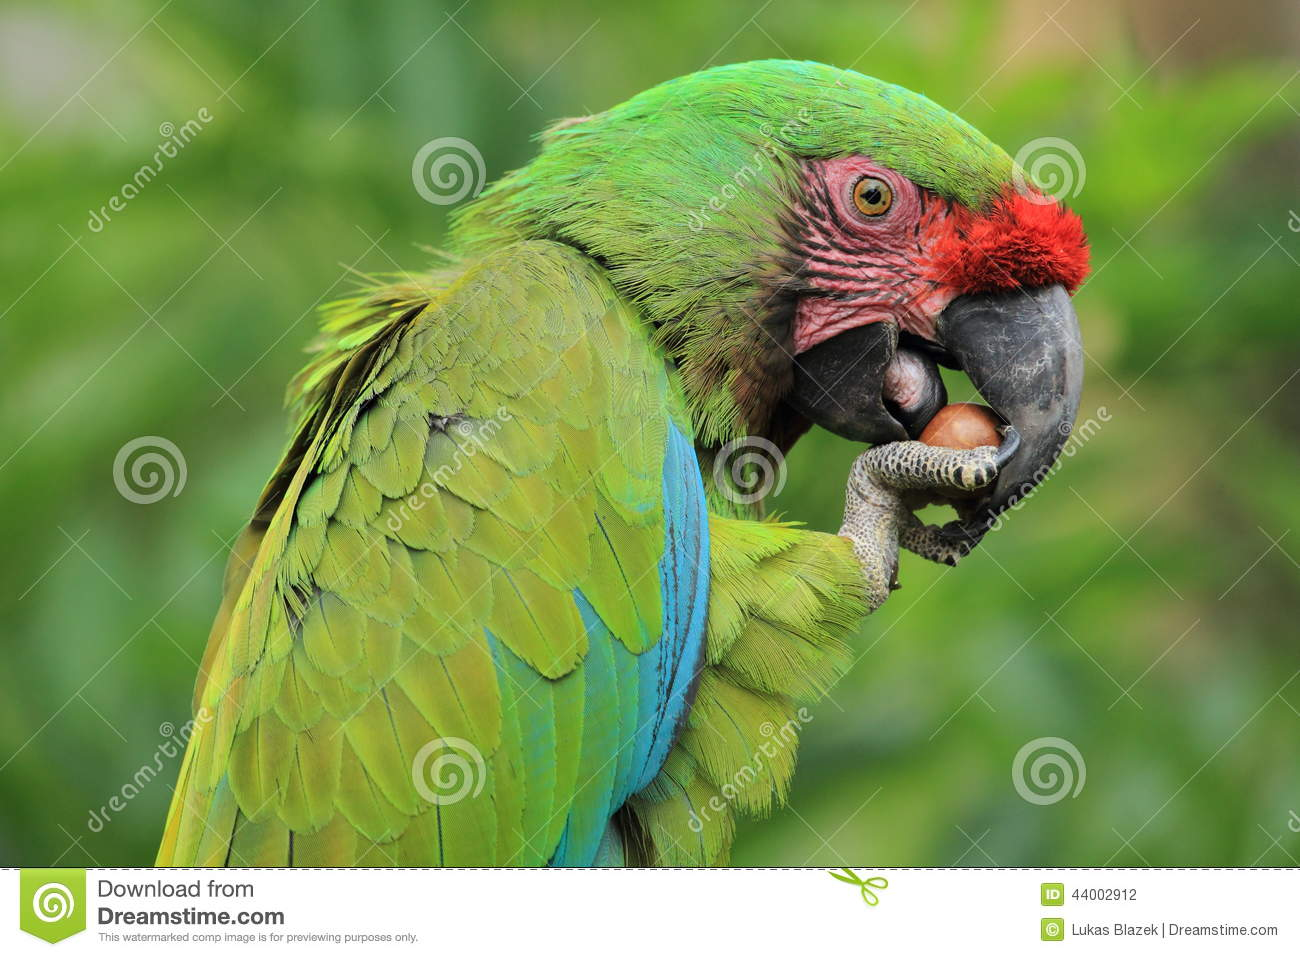 Military Macaw clipart #6, Download drawings